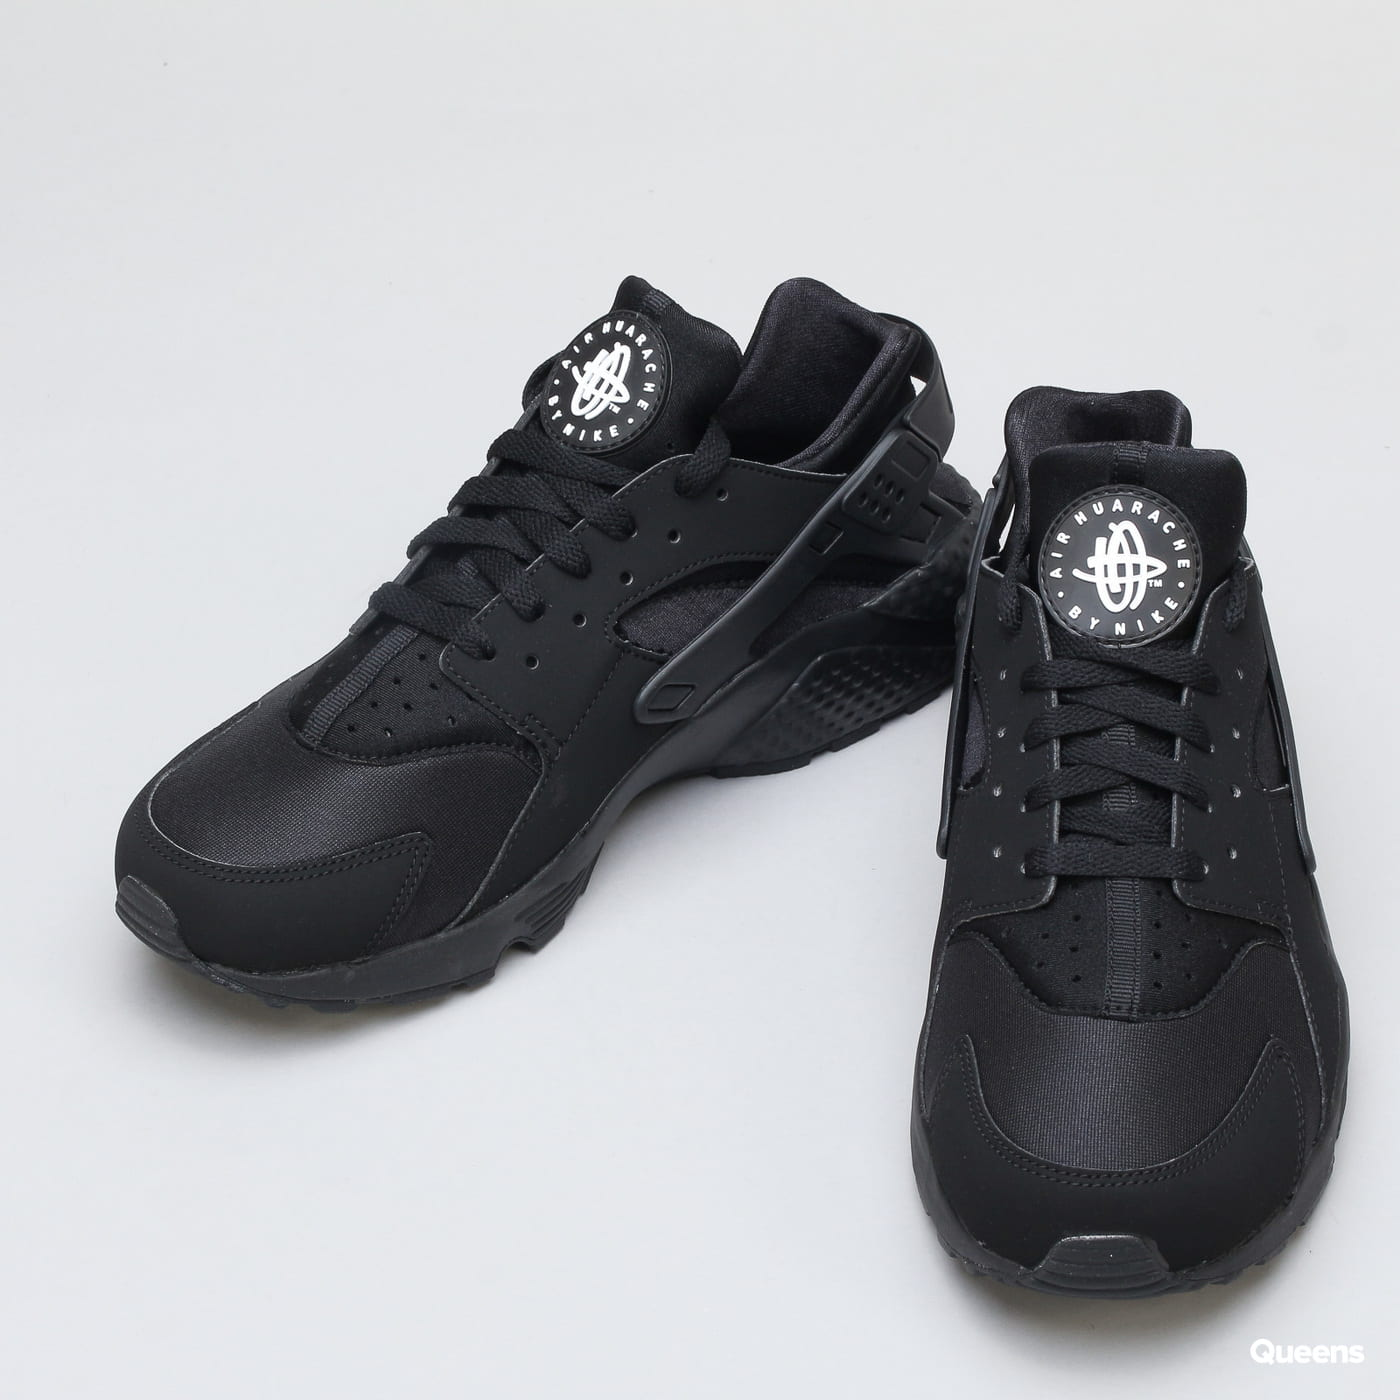 Nike Air Huarache black / black - white